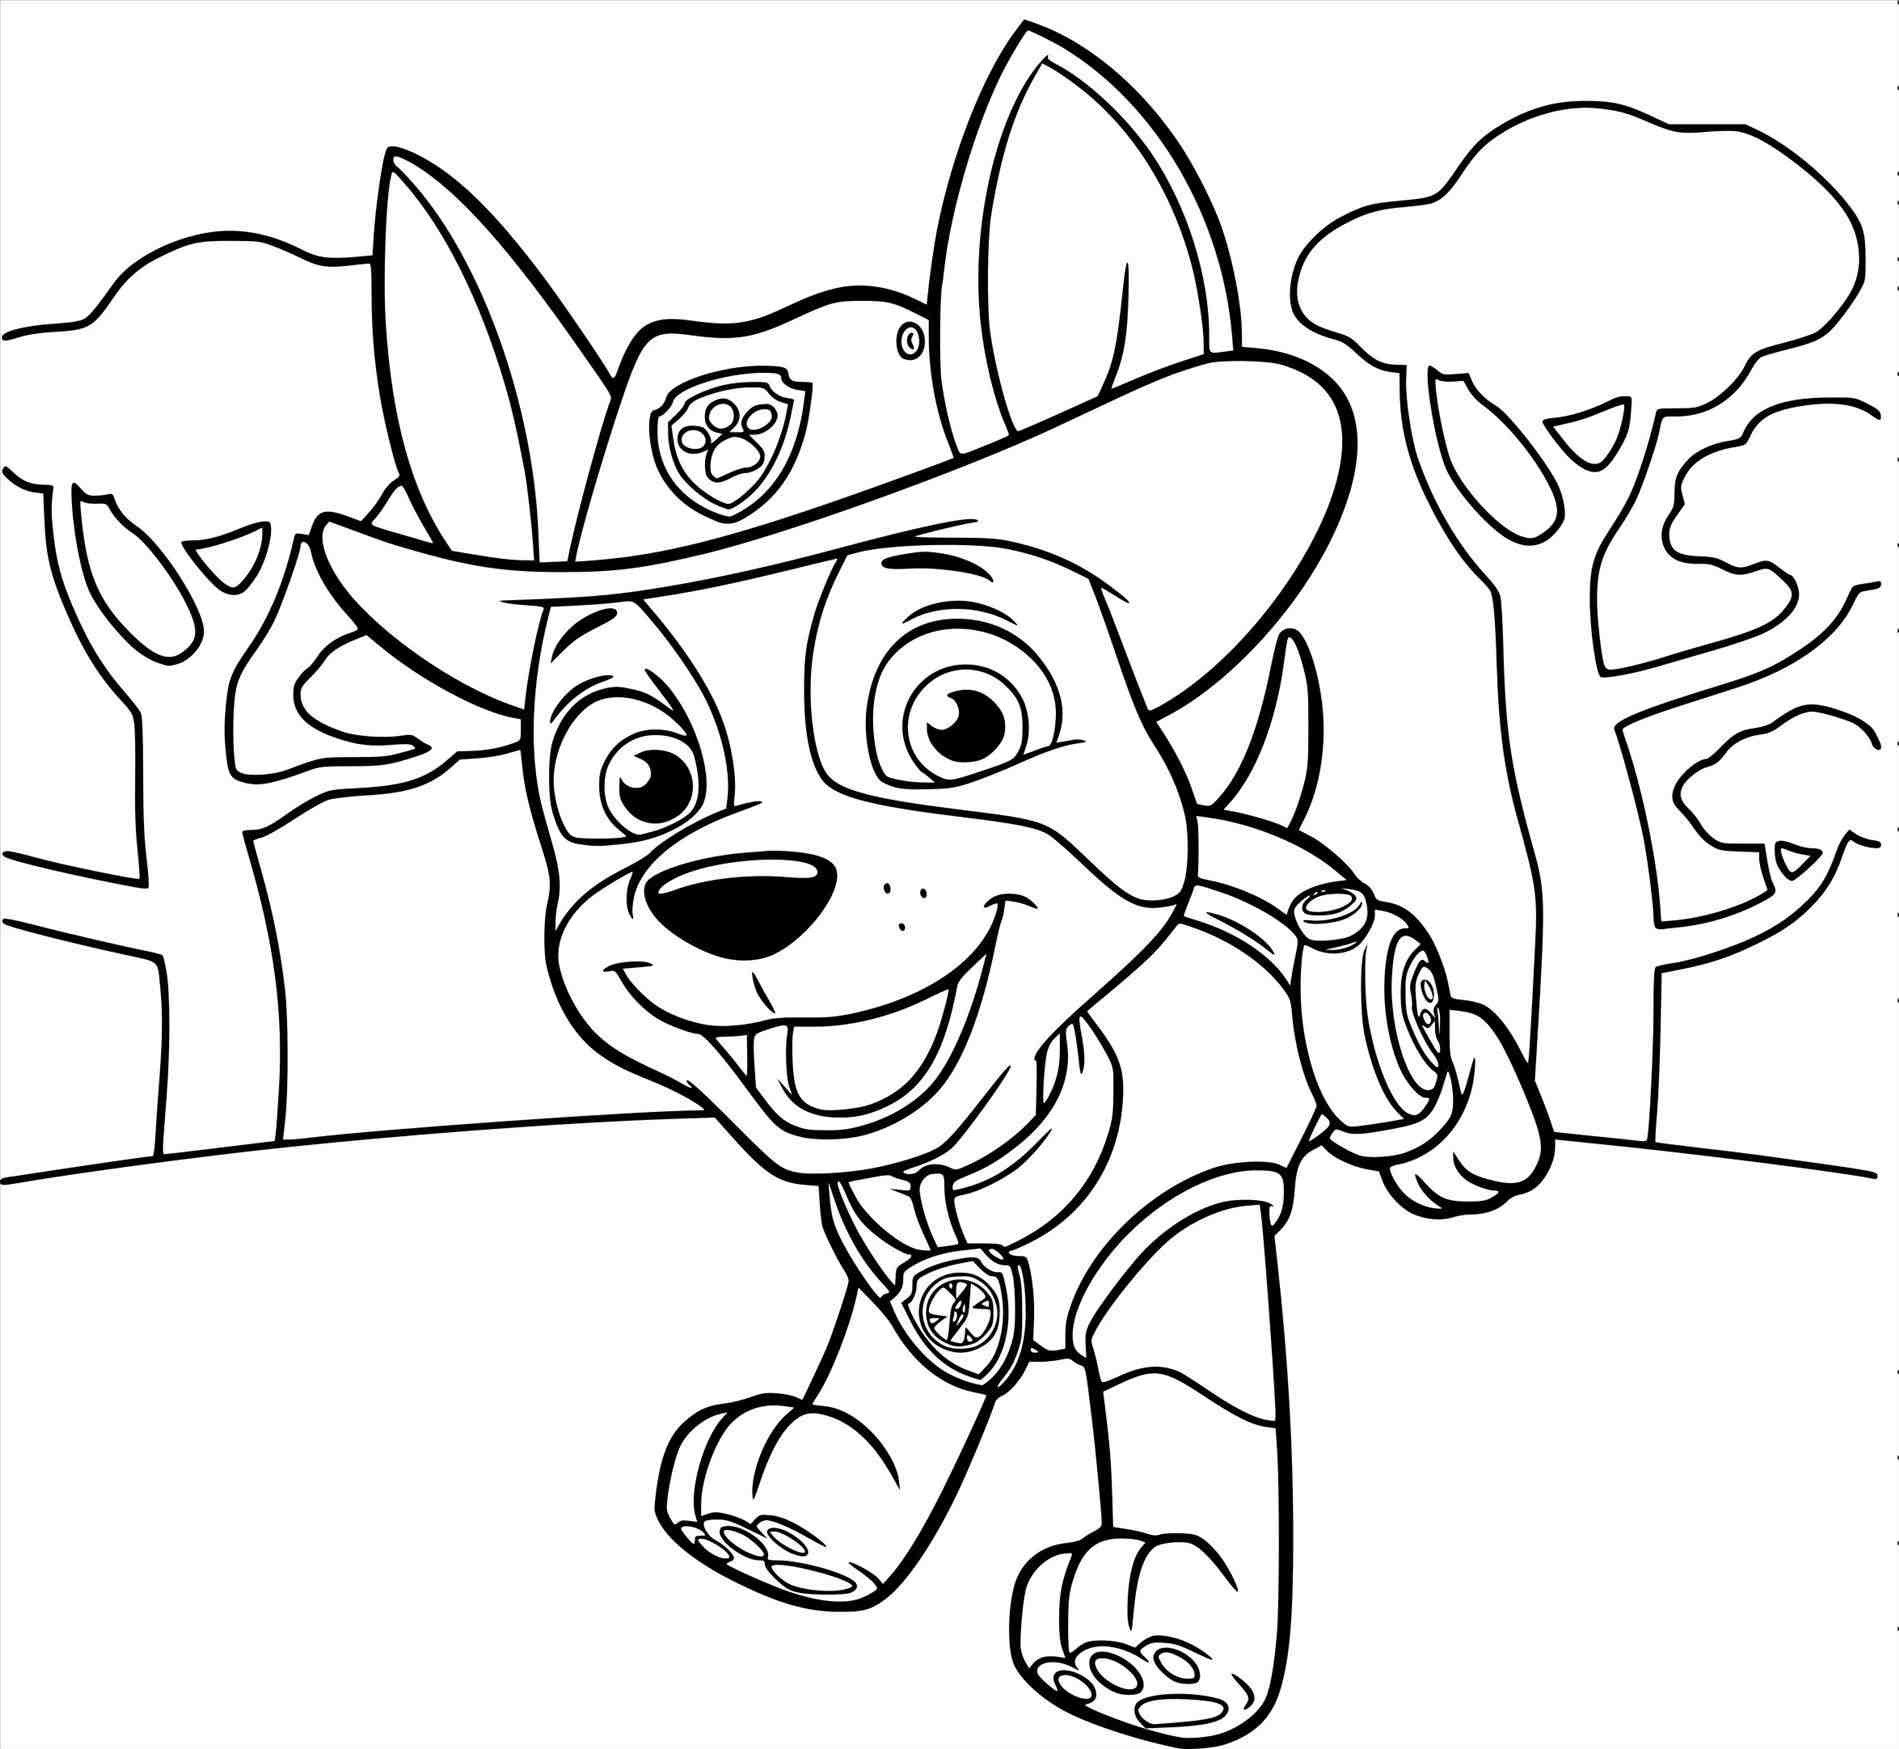 paw patrol rocky 28 collection of rocky paw patrol drawing paw patrol paw rocky patrol